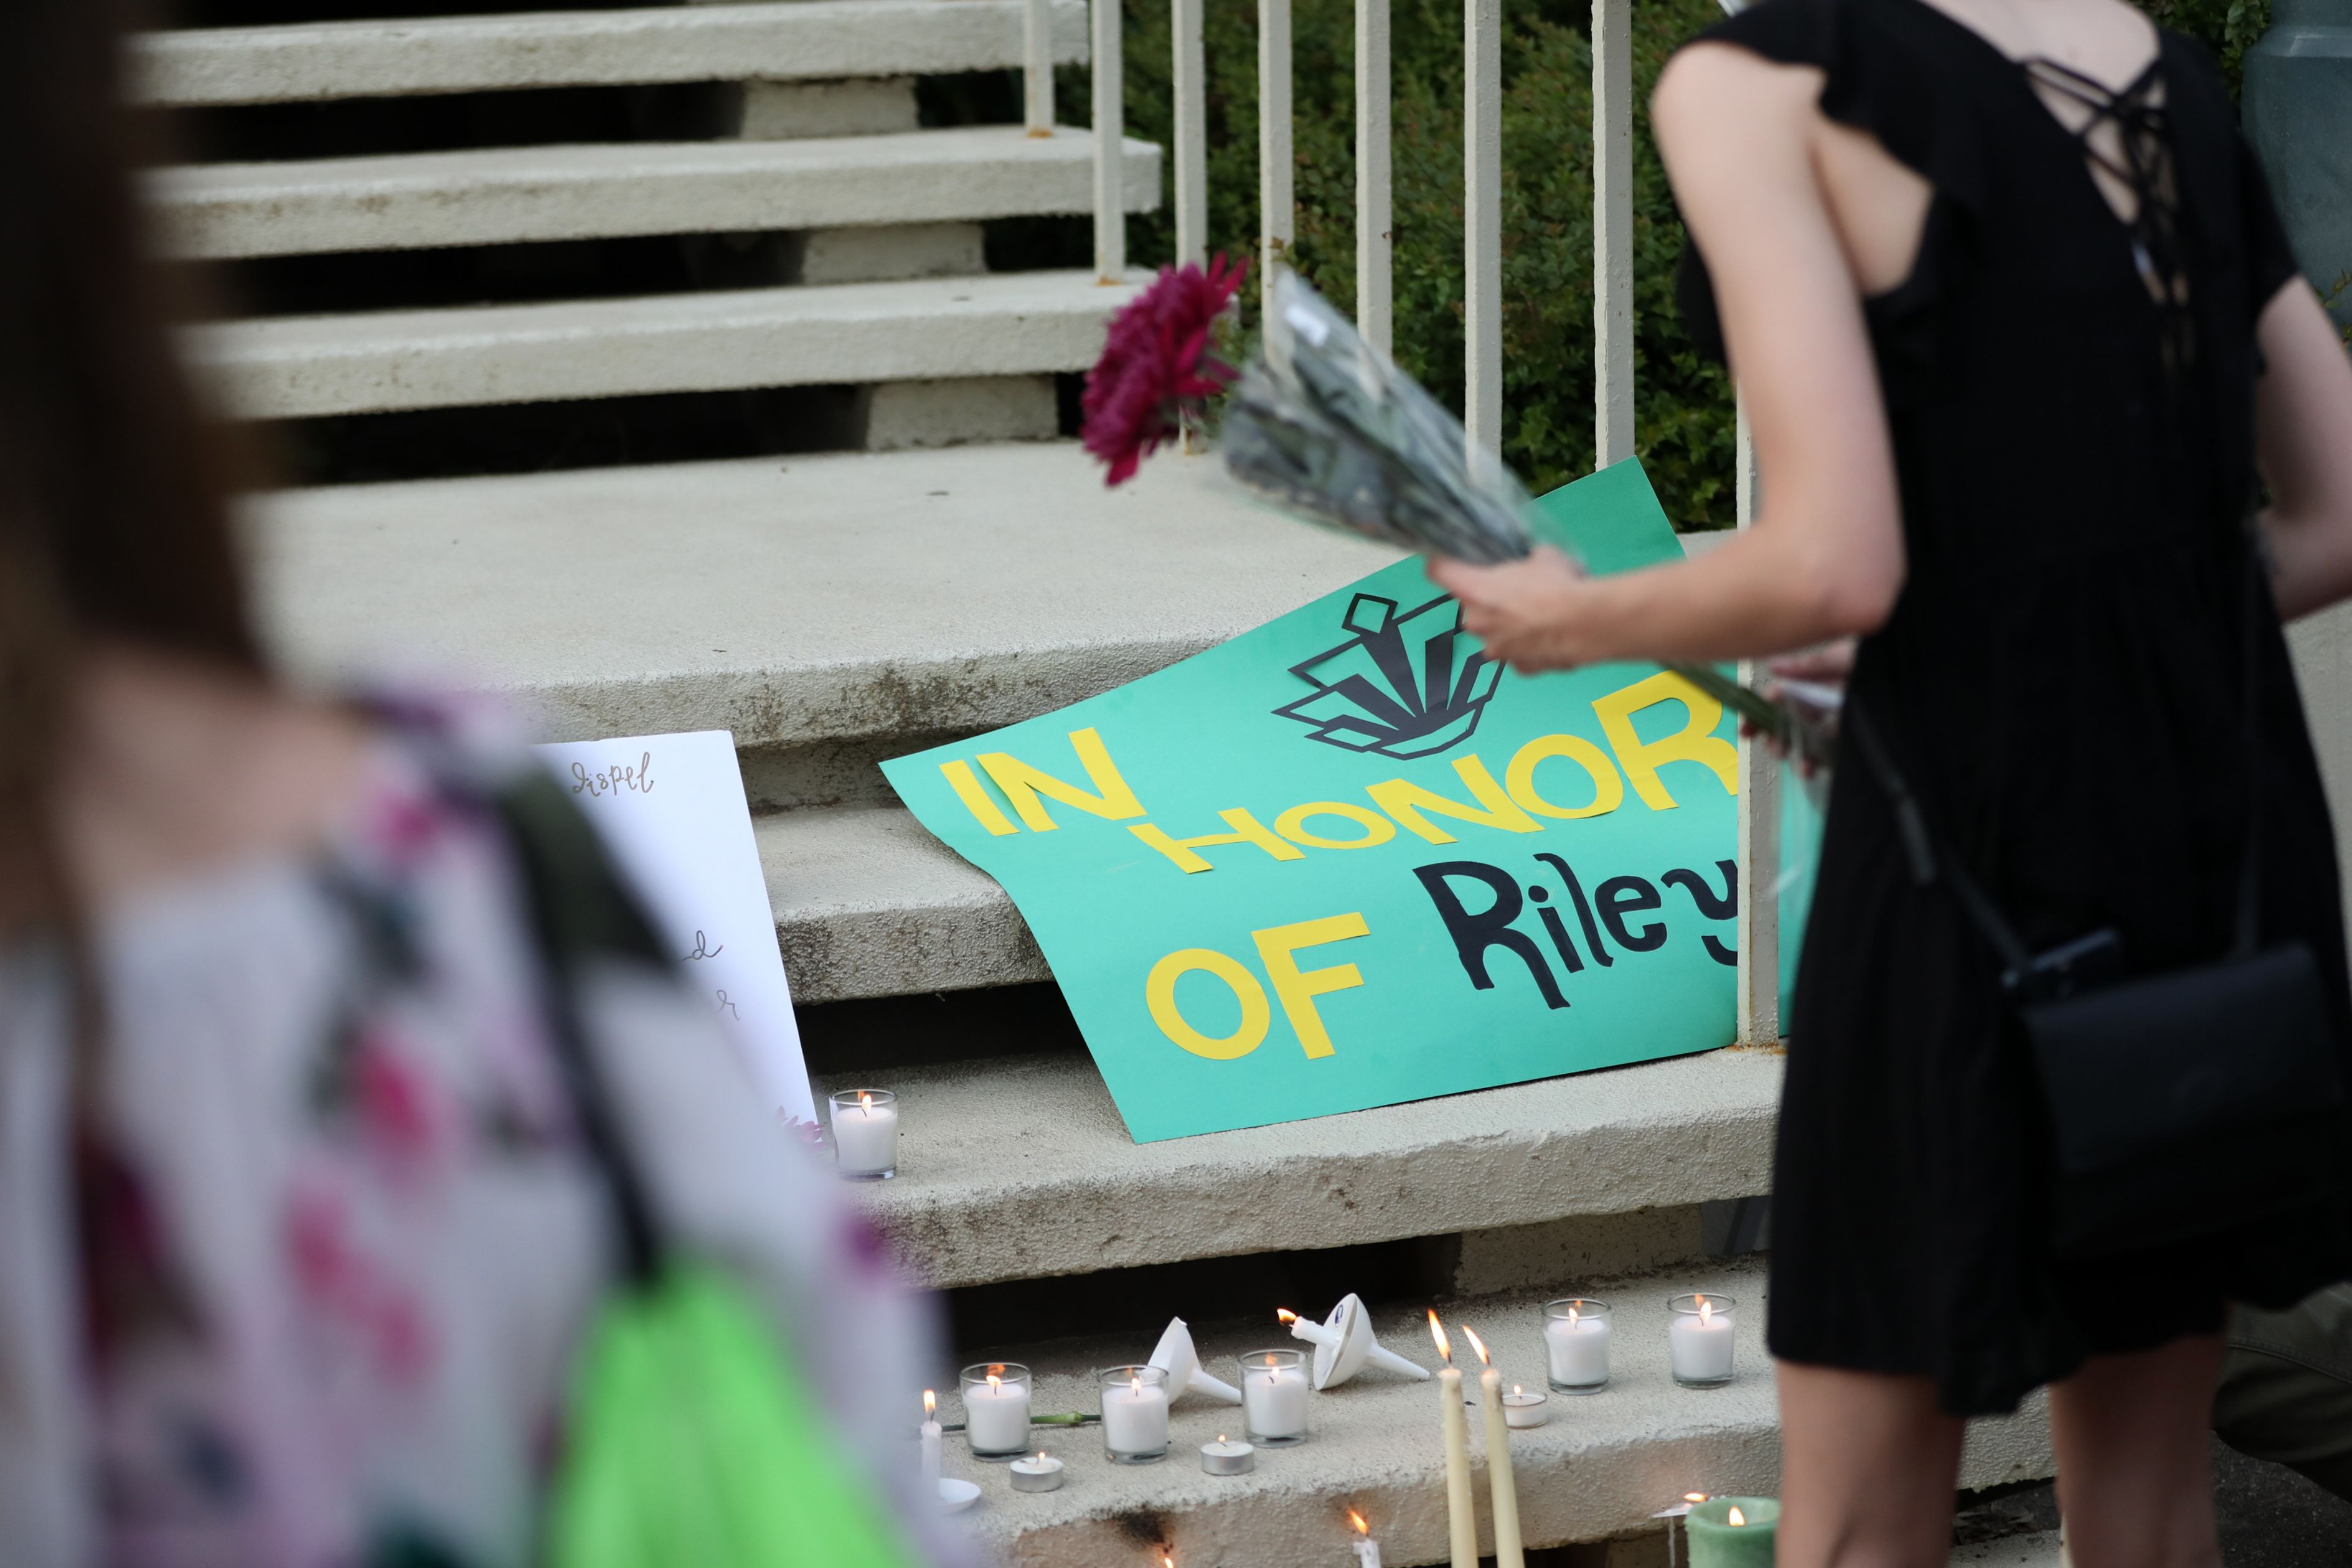 Student Slain in UNC Shooting Honored in Star Wars Book